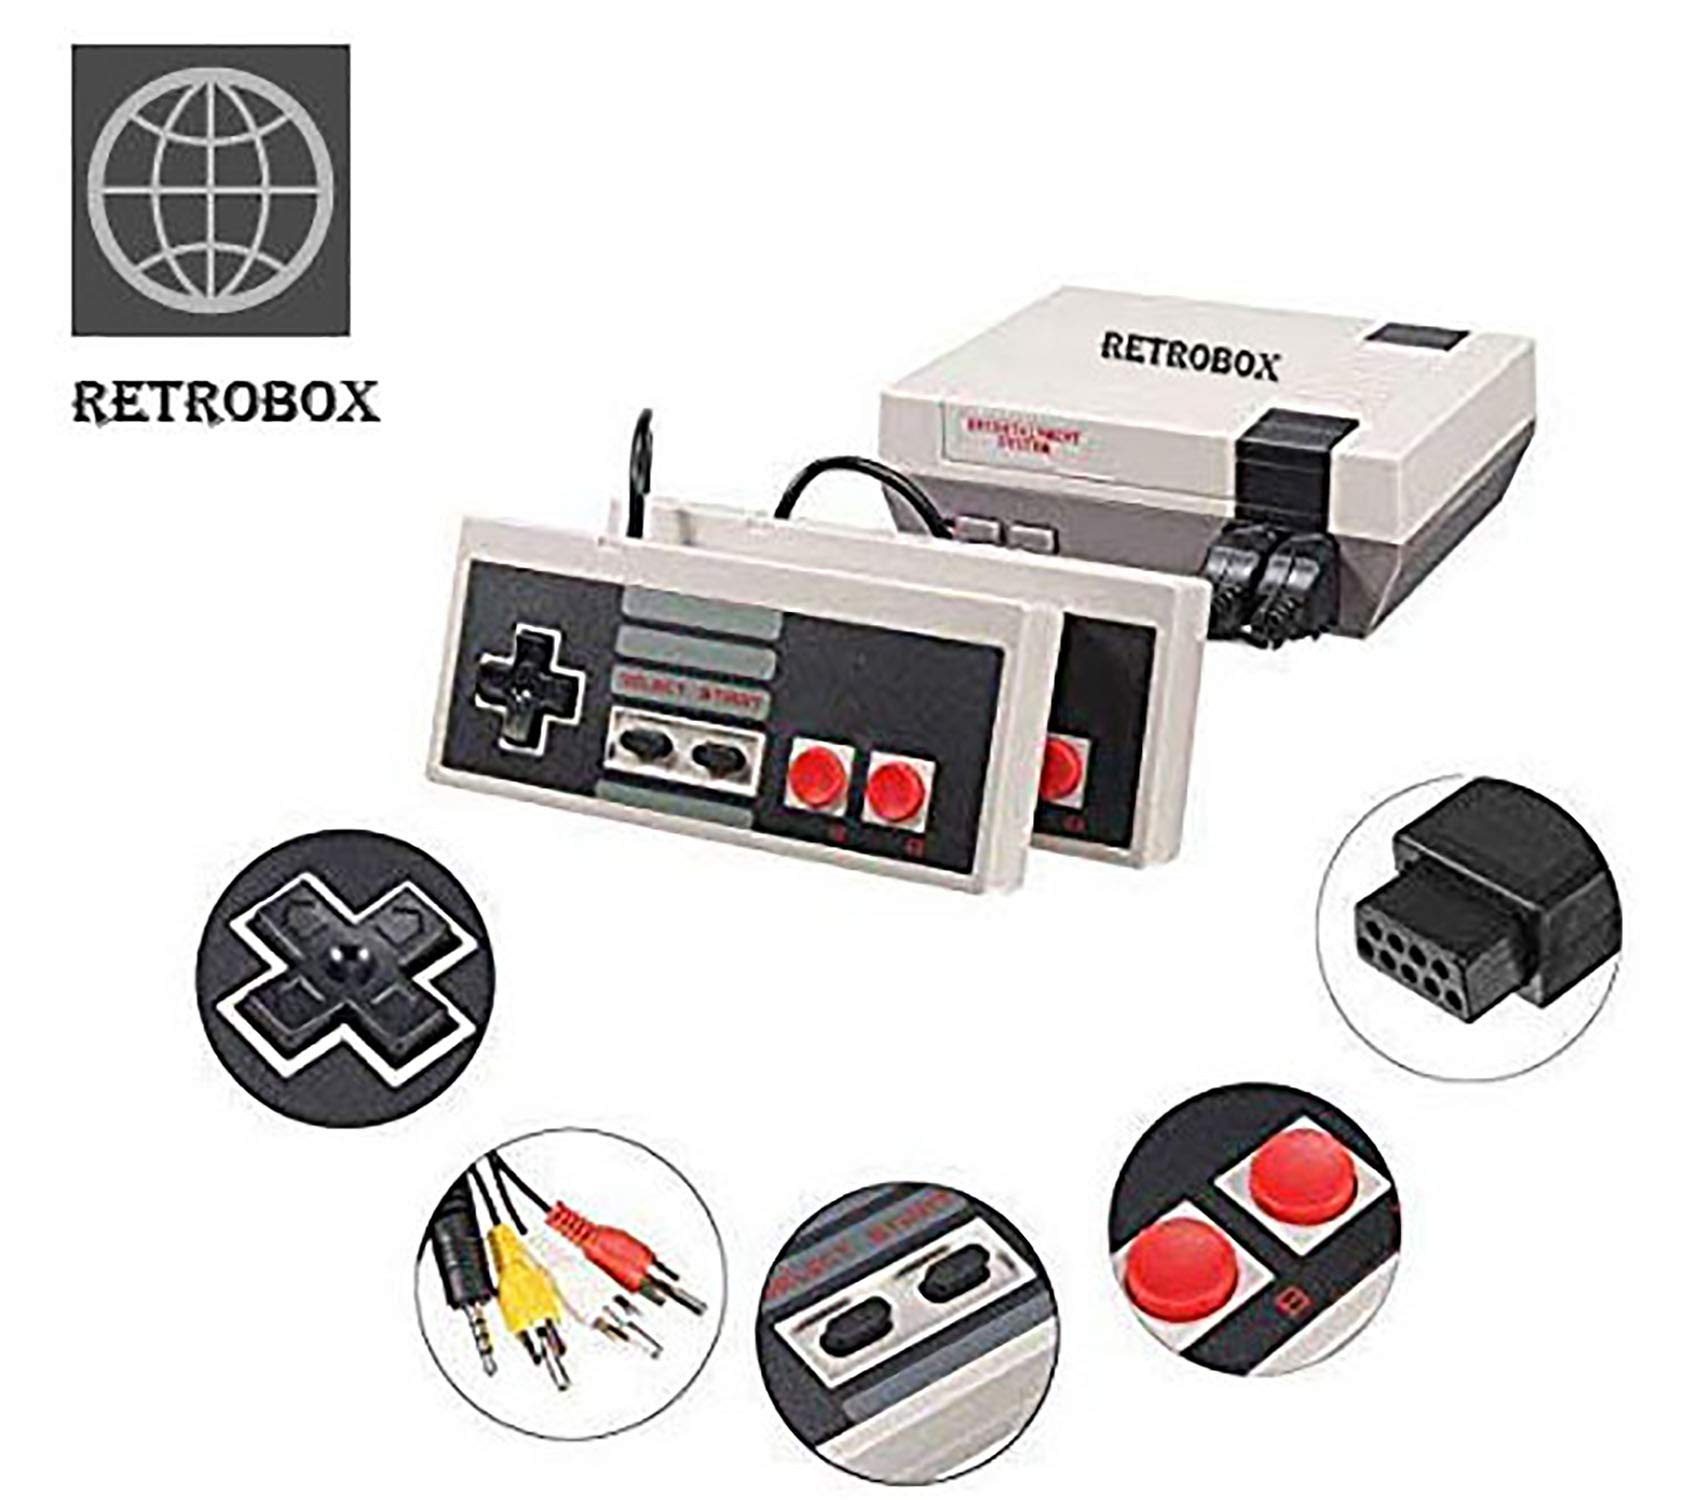 Retro Classic Game Console Retro Childhood Game Classic Game Consoles Built-in 620 Childhood Classic Game Dual Control 8-Bit Console Handheld Game Player Console for Classic Games Family TV Video by RetroBox (Image #1)